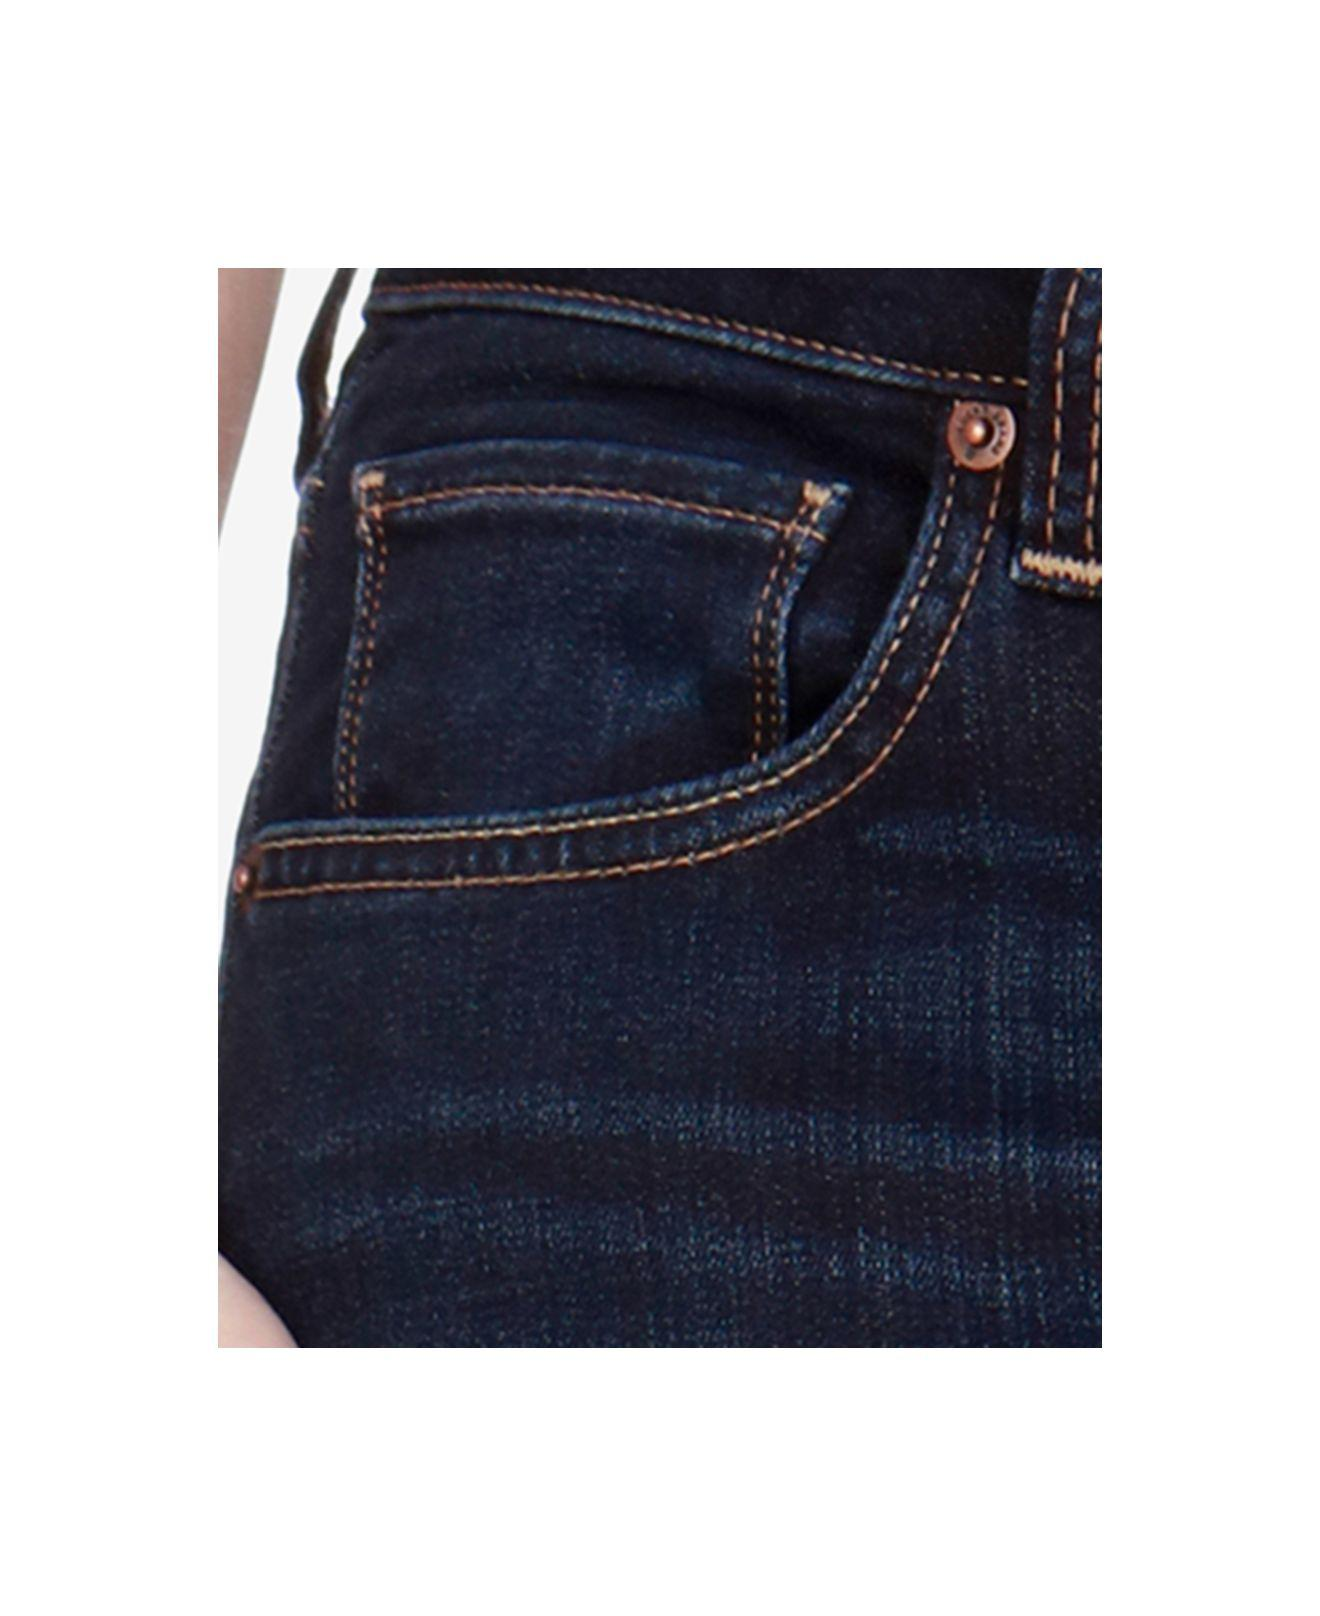 937ca6a2ce7 Lucky Brand - Blue Trendy Plus Size   Petite Plus Ginger Bootcut Jeans -  Lyst. View fullscreen